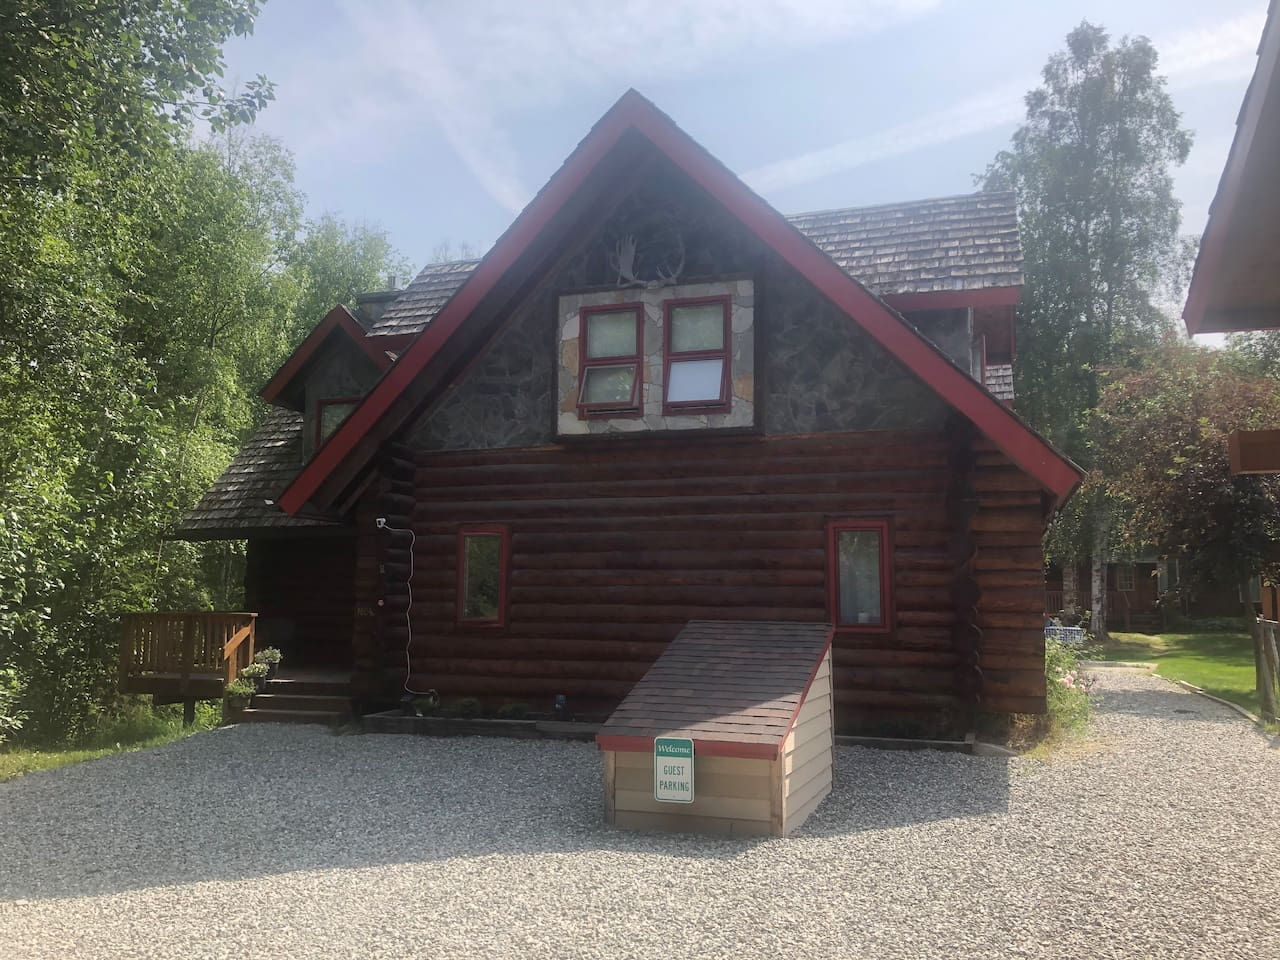 Alaskan log cabin retreat , 5 bedrooms,  large yard and plenty of parking , perfect for retreats and family gatherings